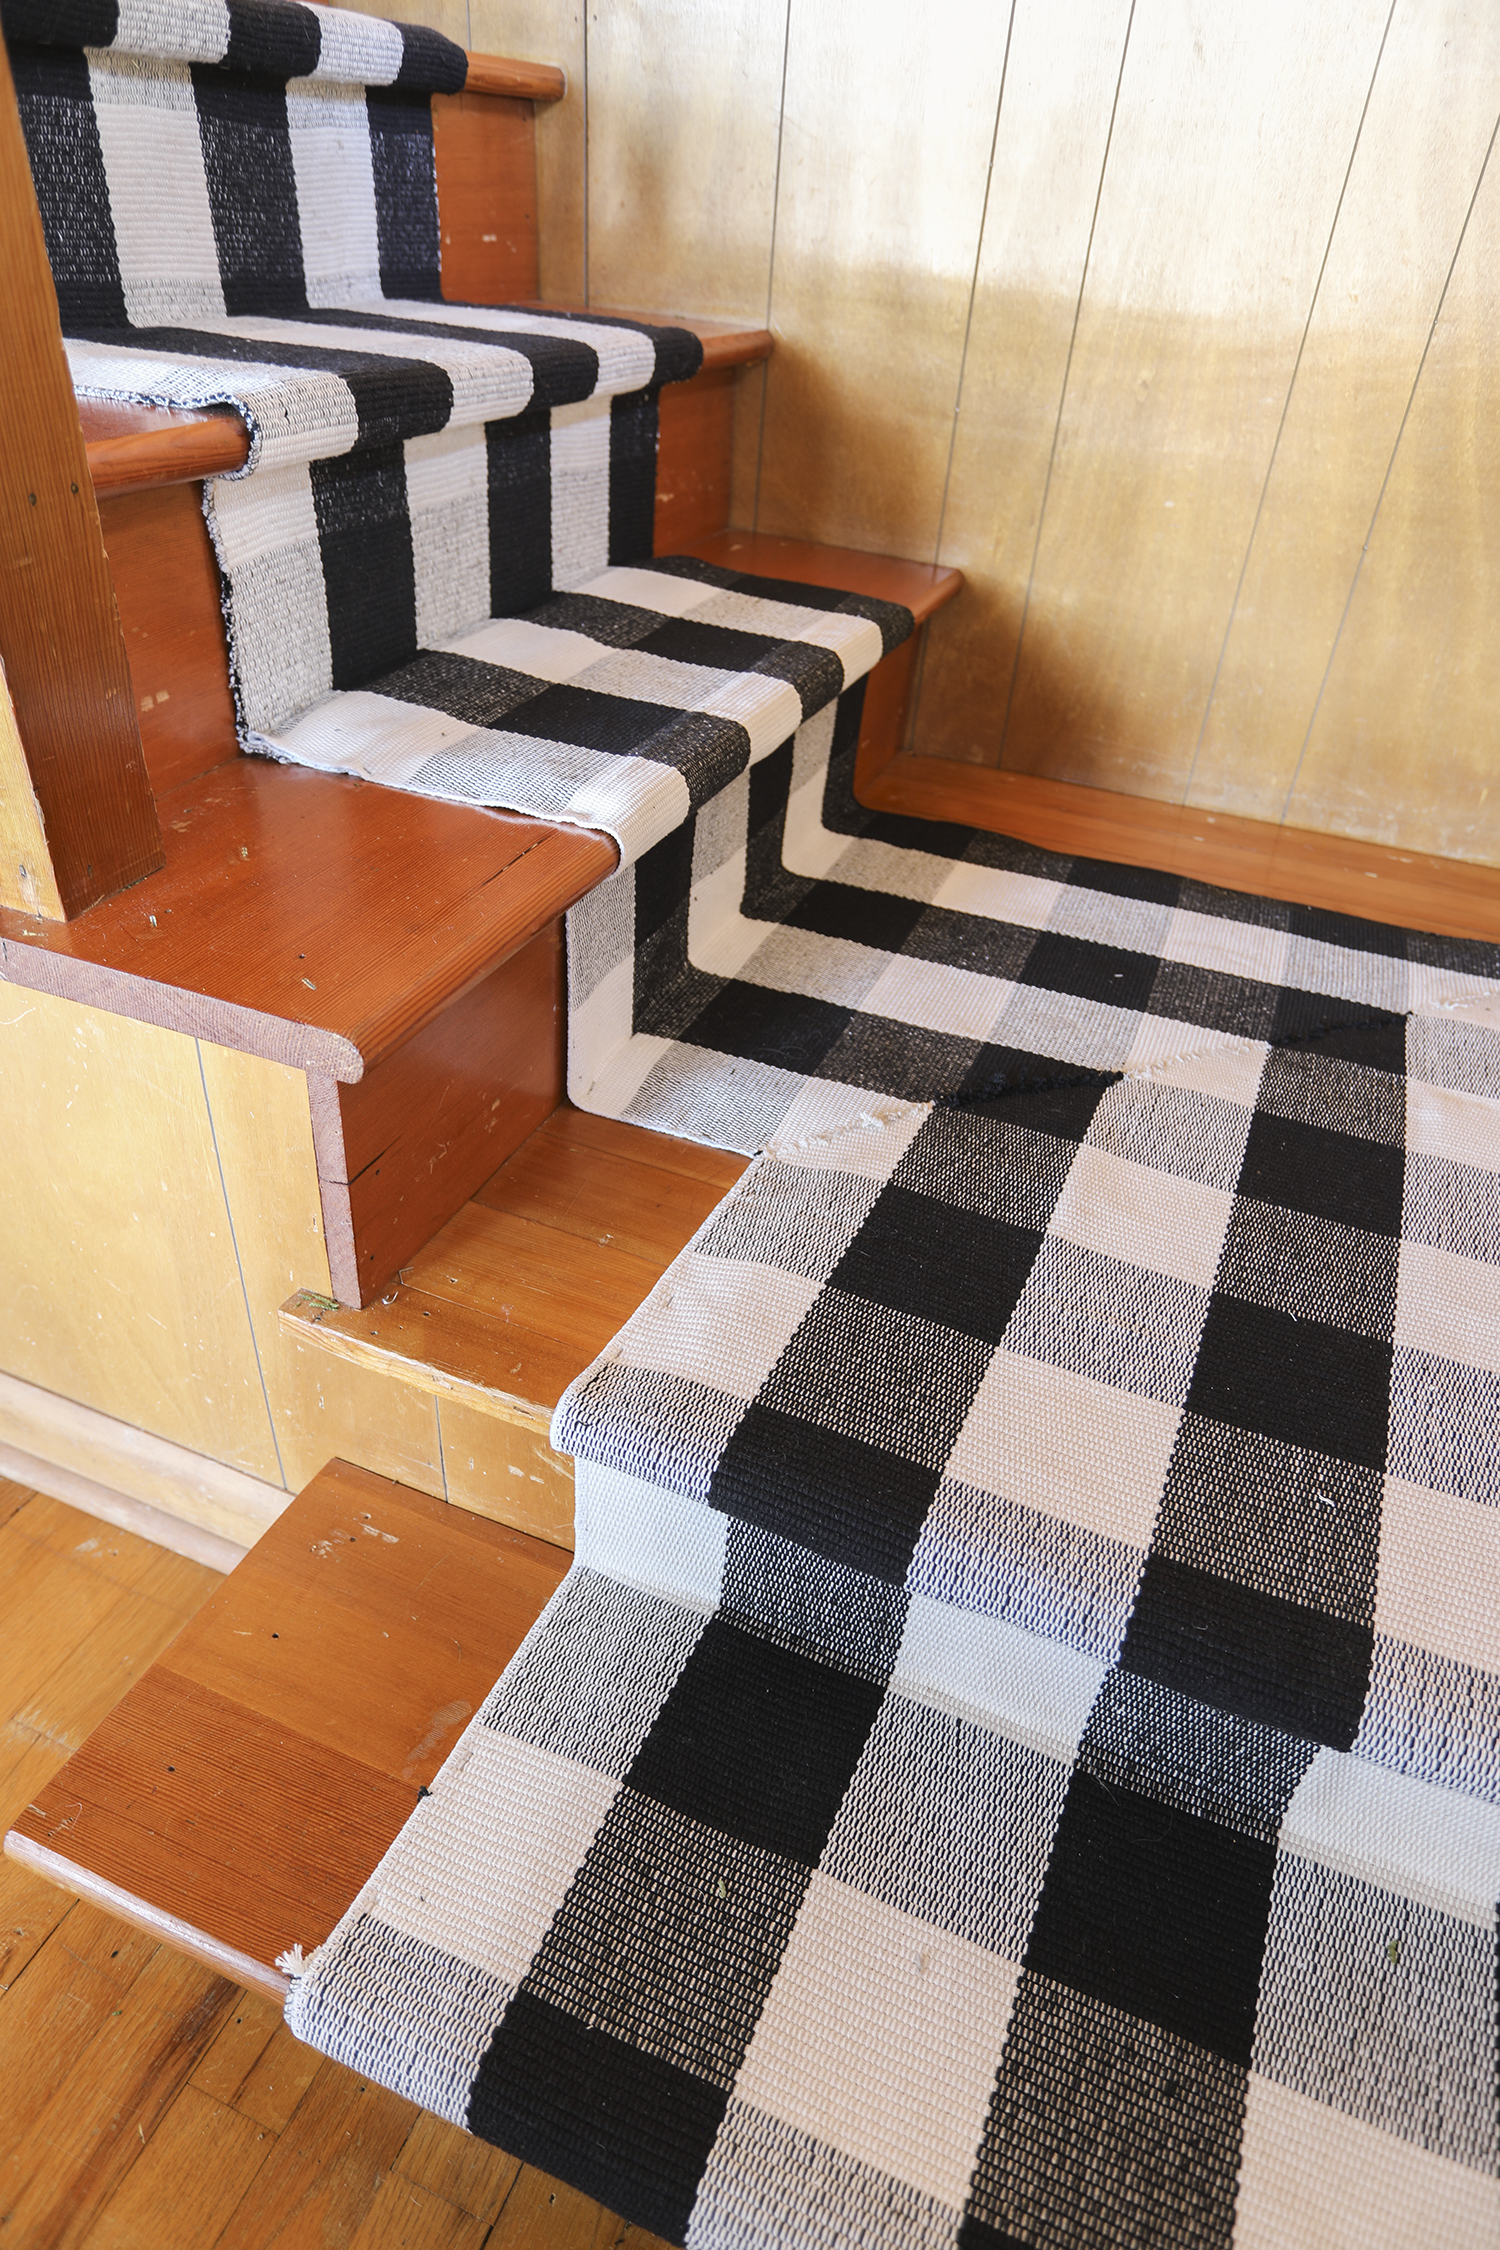 Part II : Mitering a Stair Runner Around a Corner